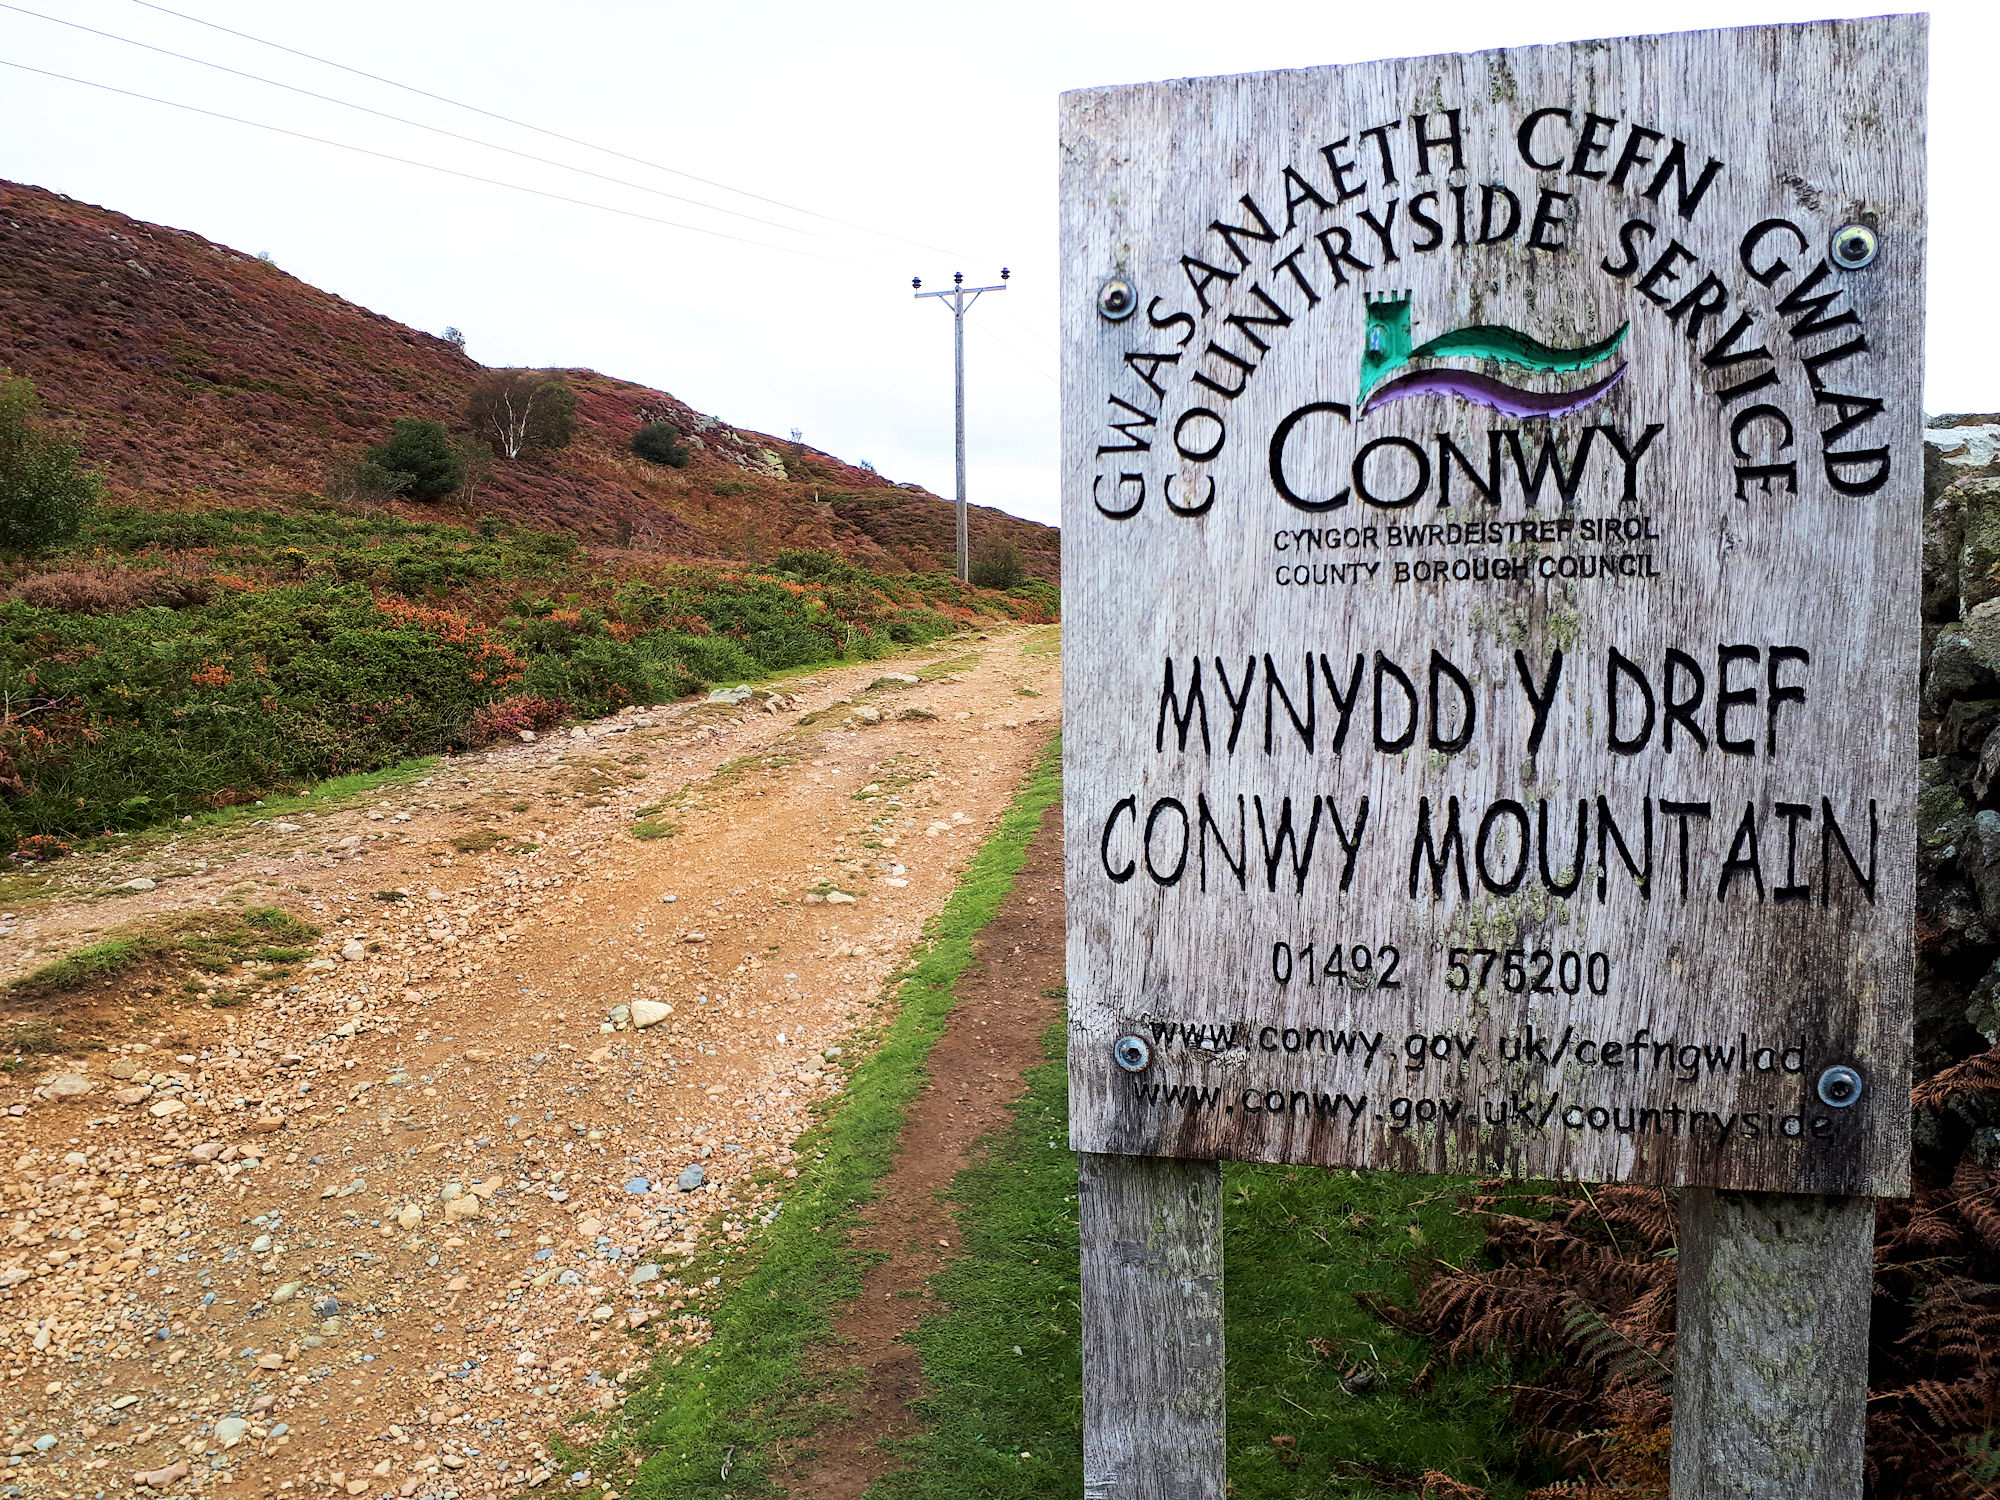 Approaching Conwy Mountain